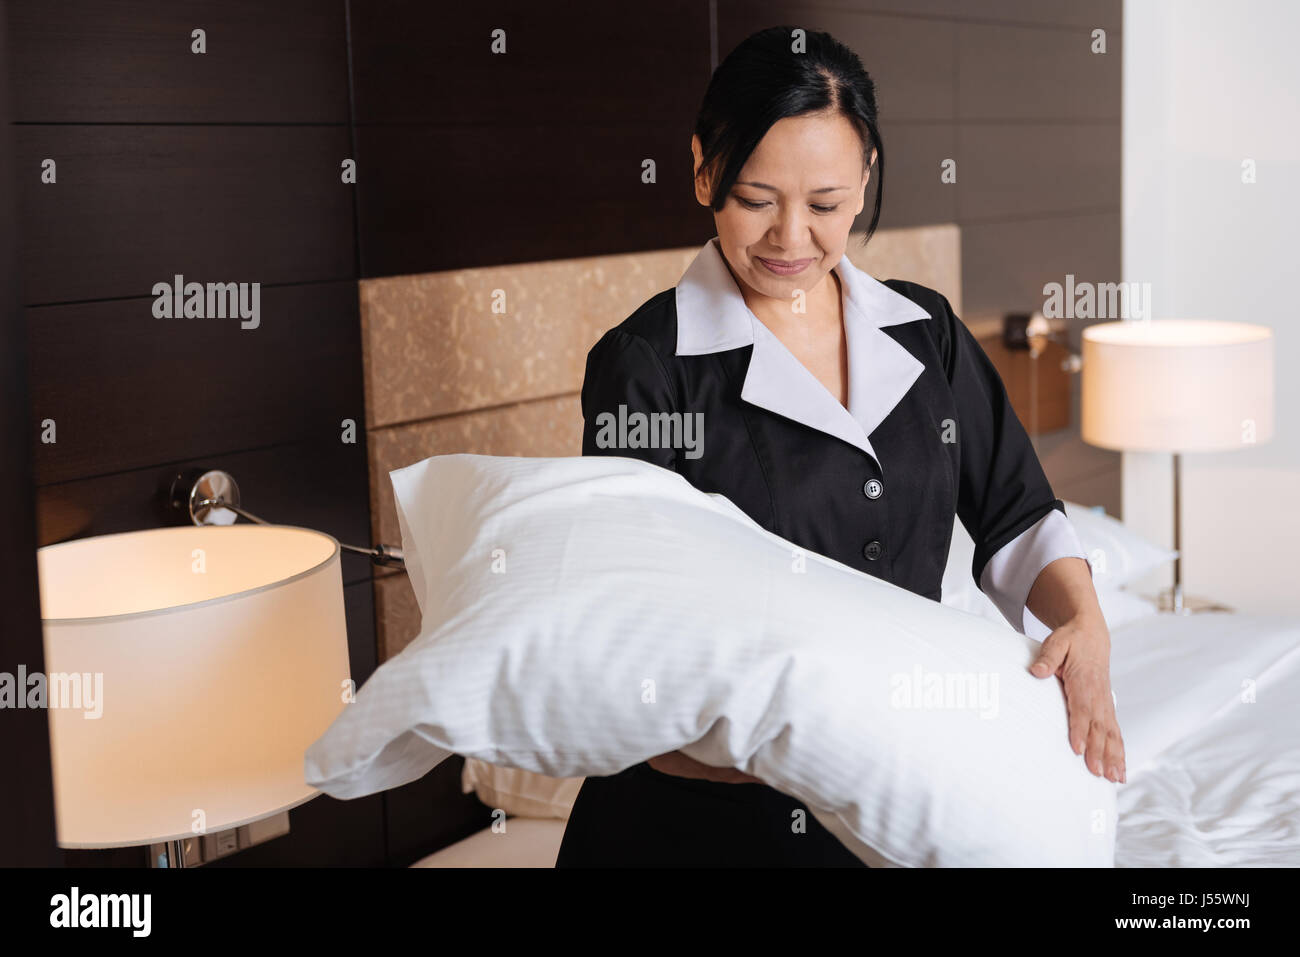 Positive hard working hotel maid looking at the pillow - Stock Image